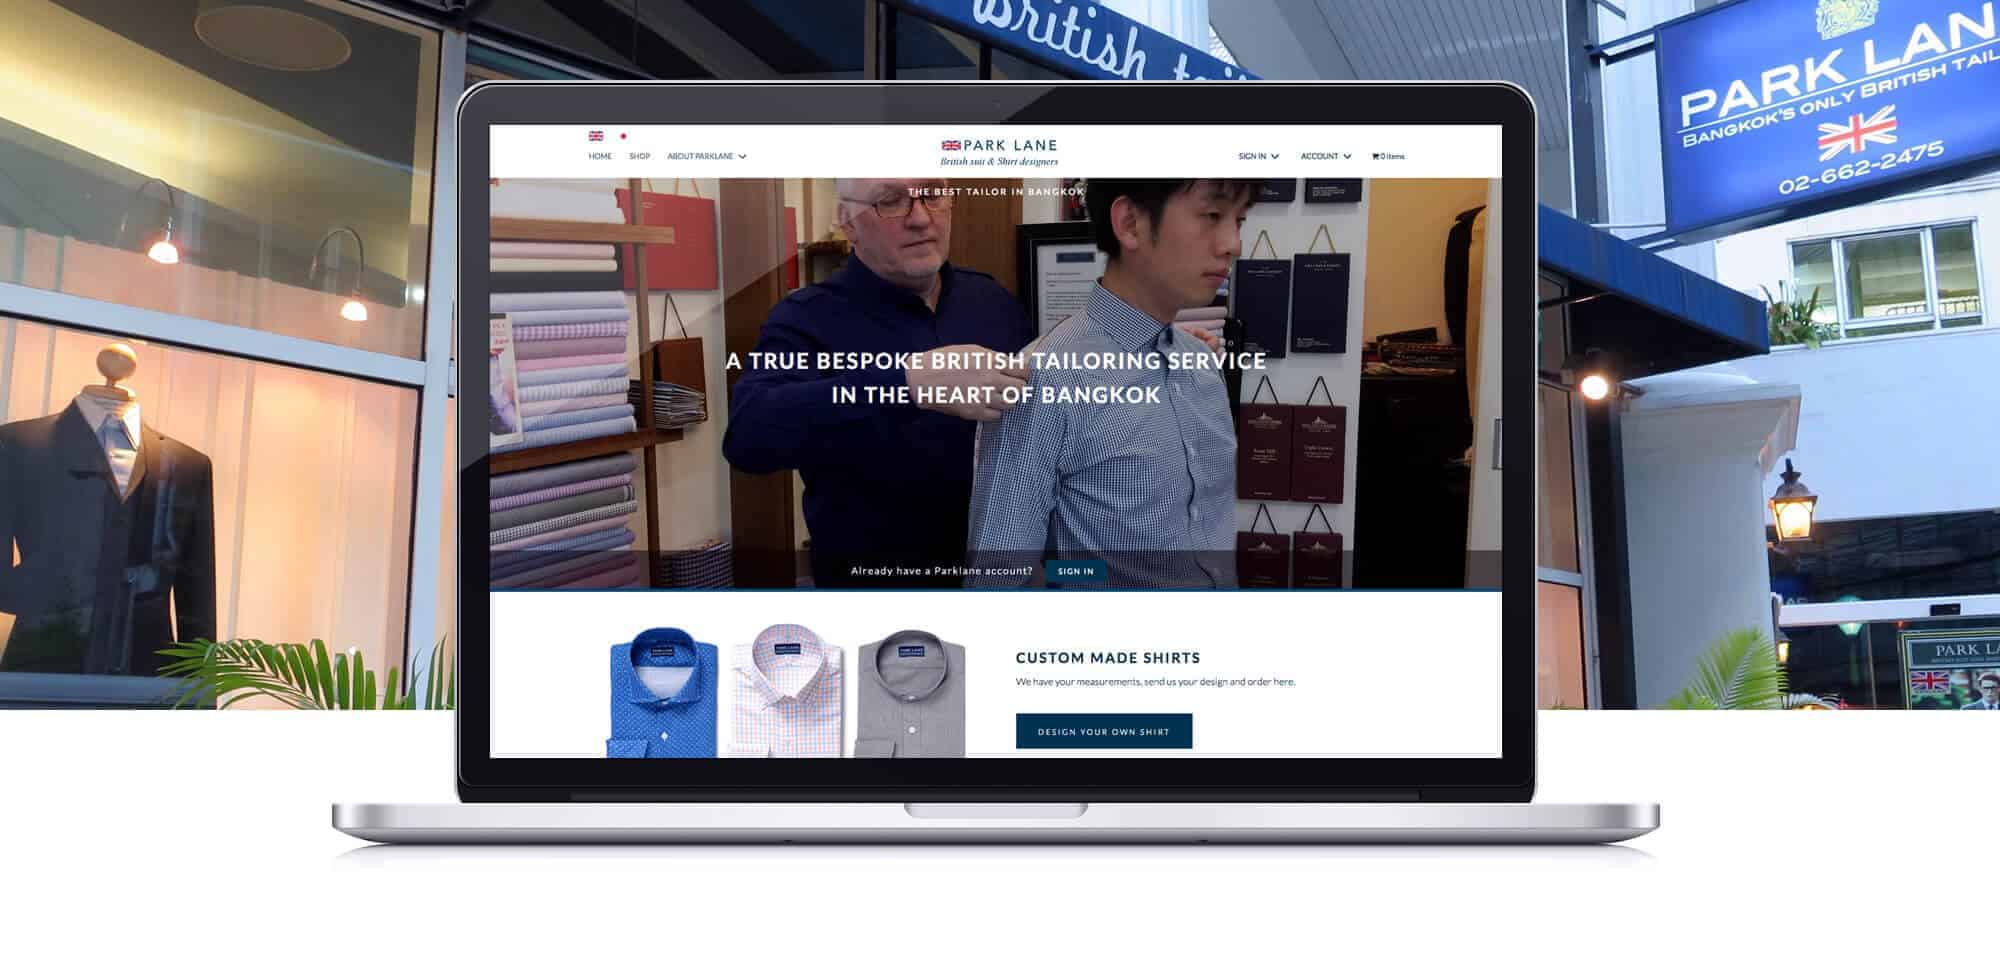 website-design-tailors-park-lane-store-1